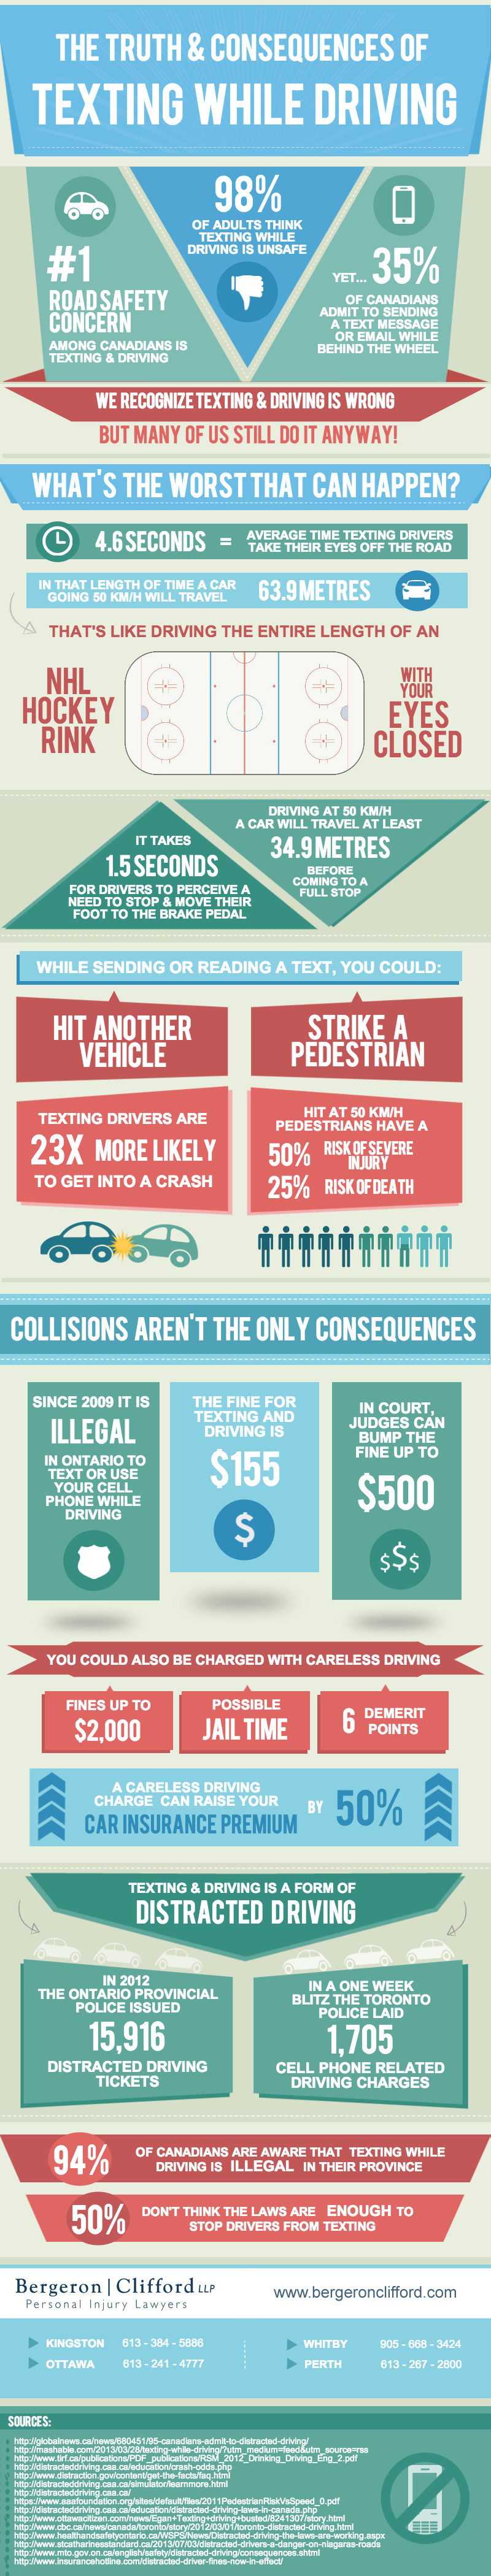 The Truth & Consequences of Texting While Driving]